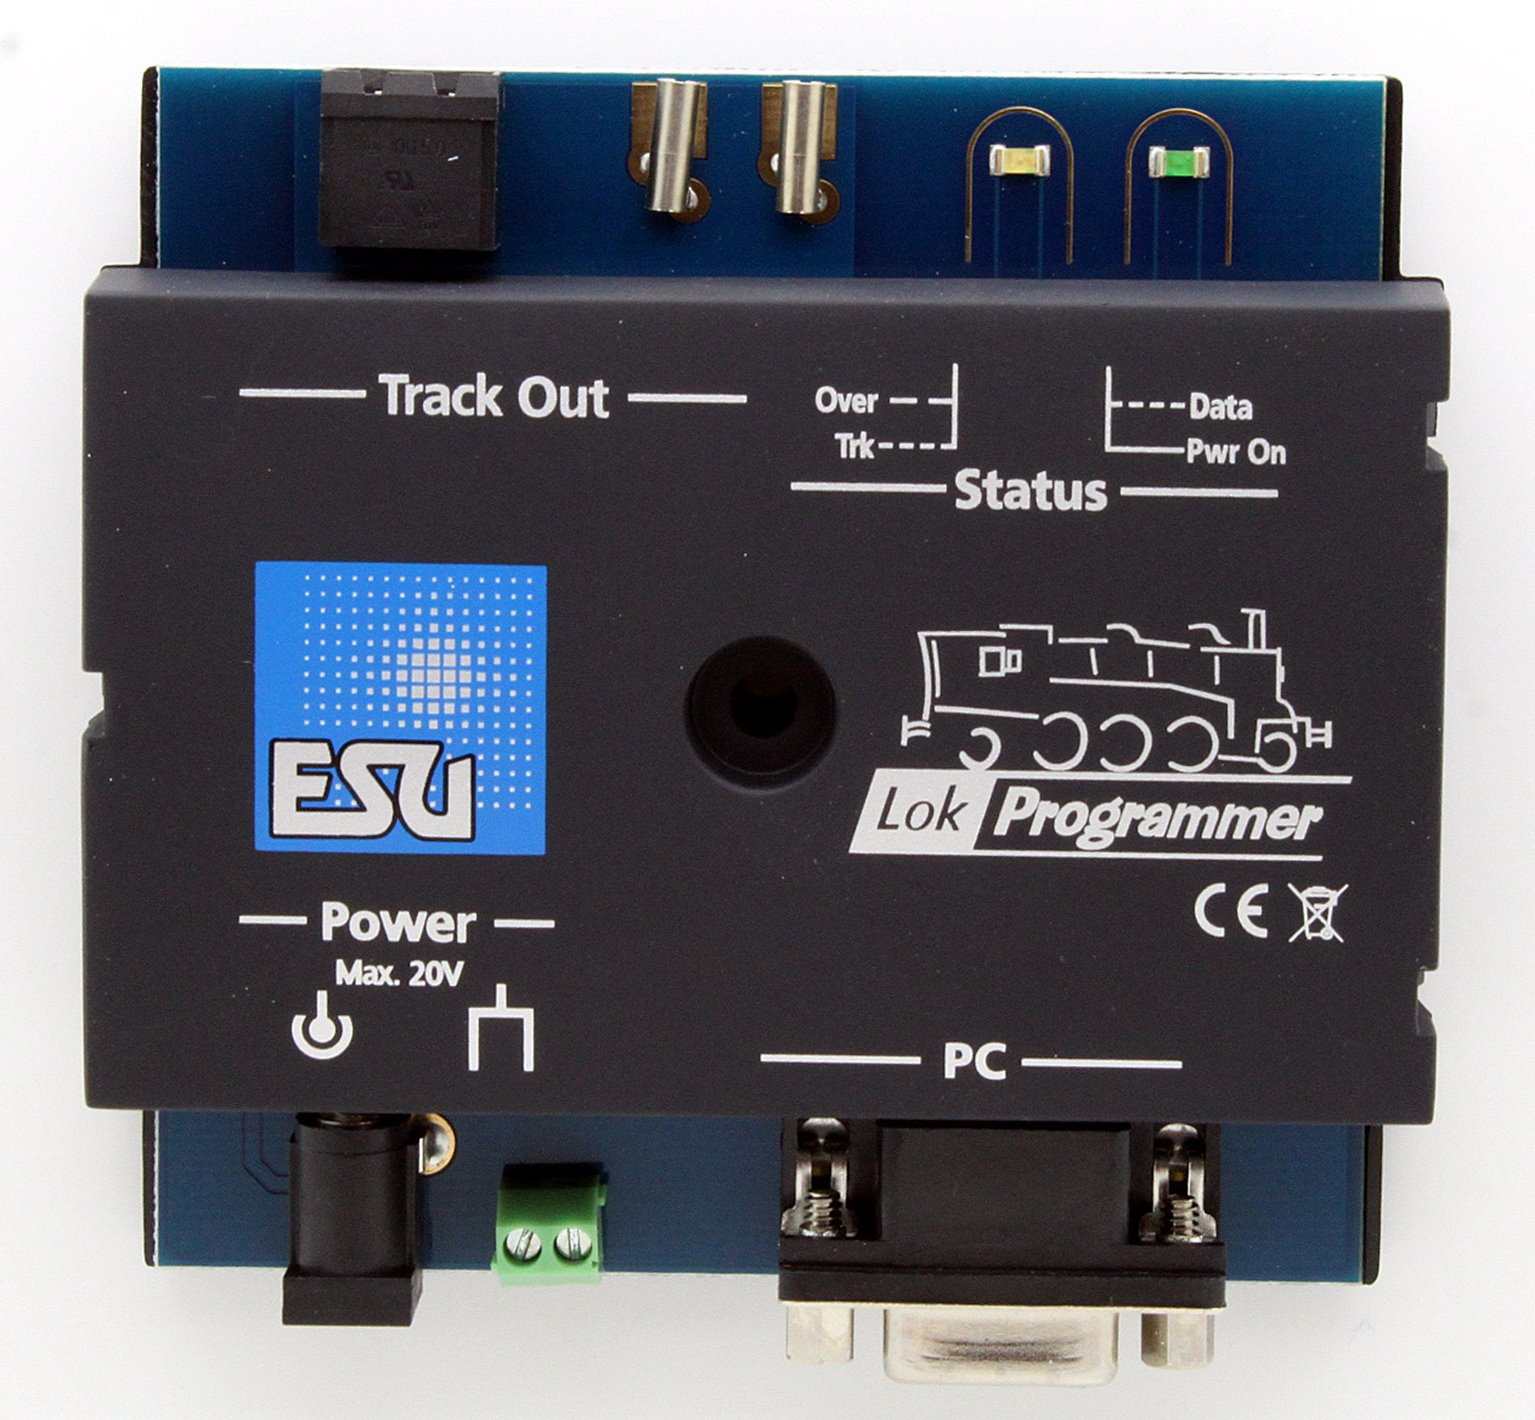 LokProgrammer unit with power supply, serial PC cable, manual, software CD, USB adapter